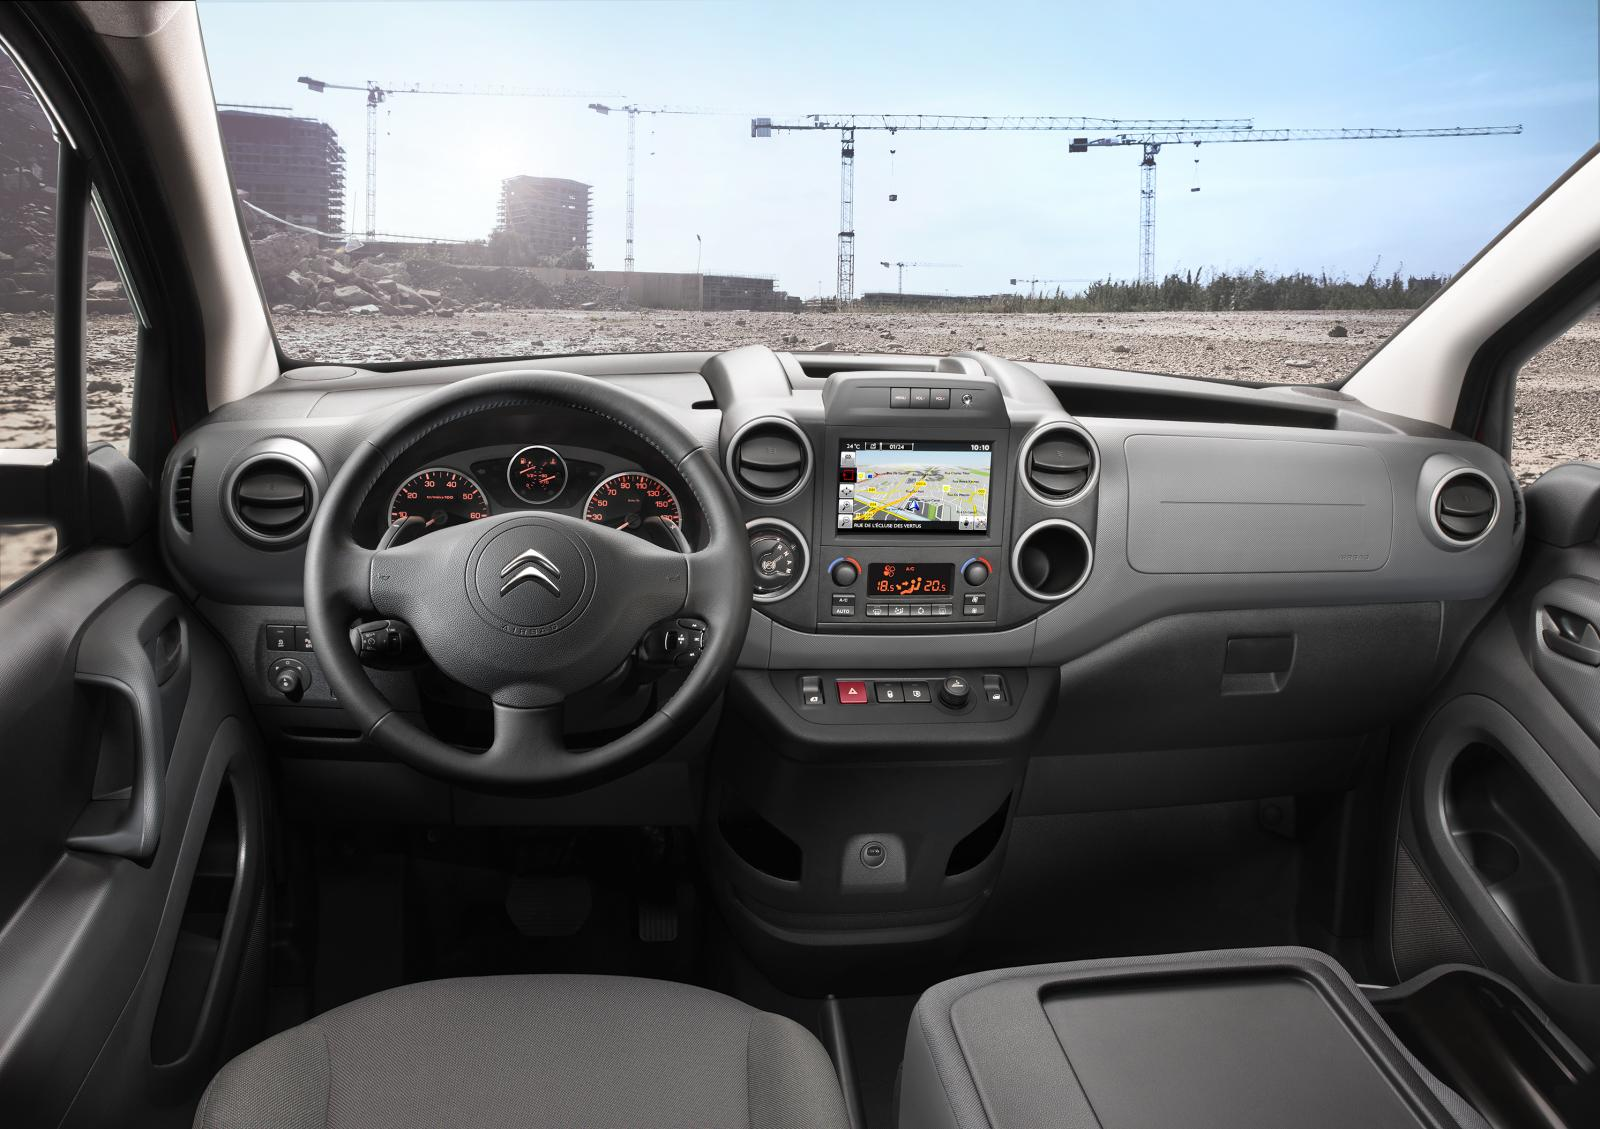 Inside Berlingo van 2015